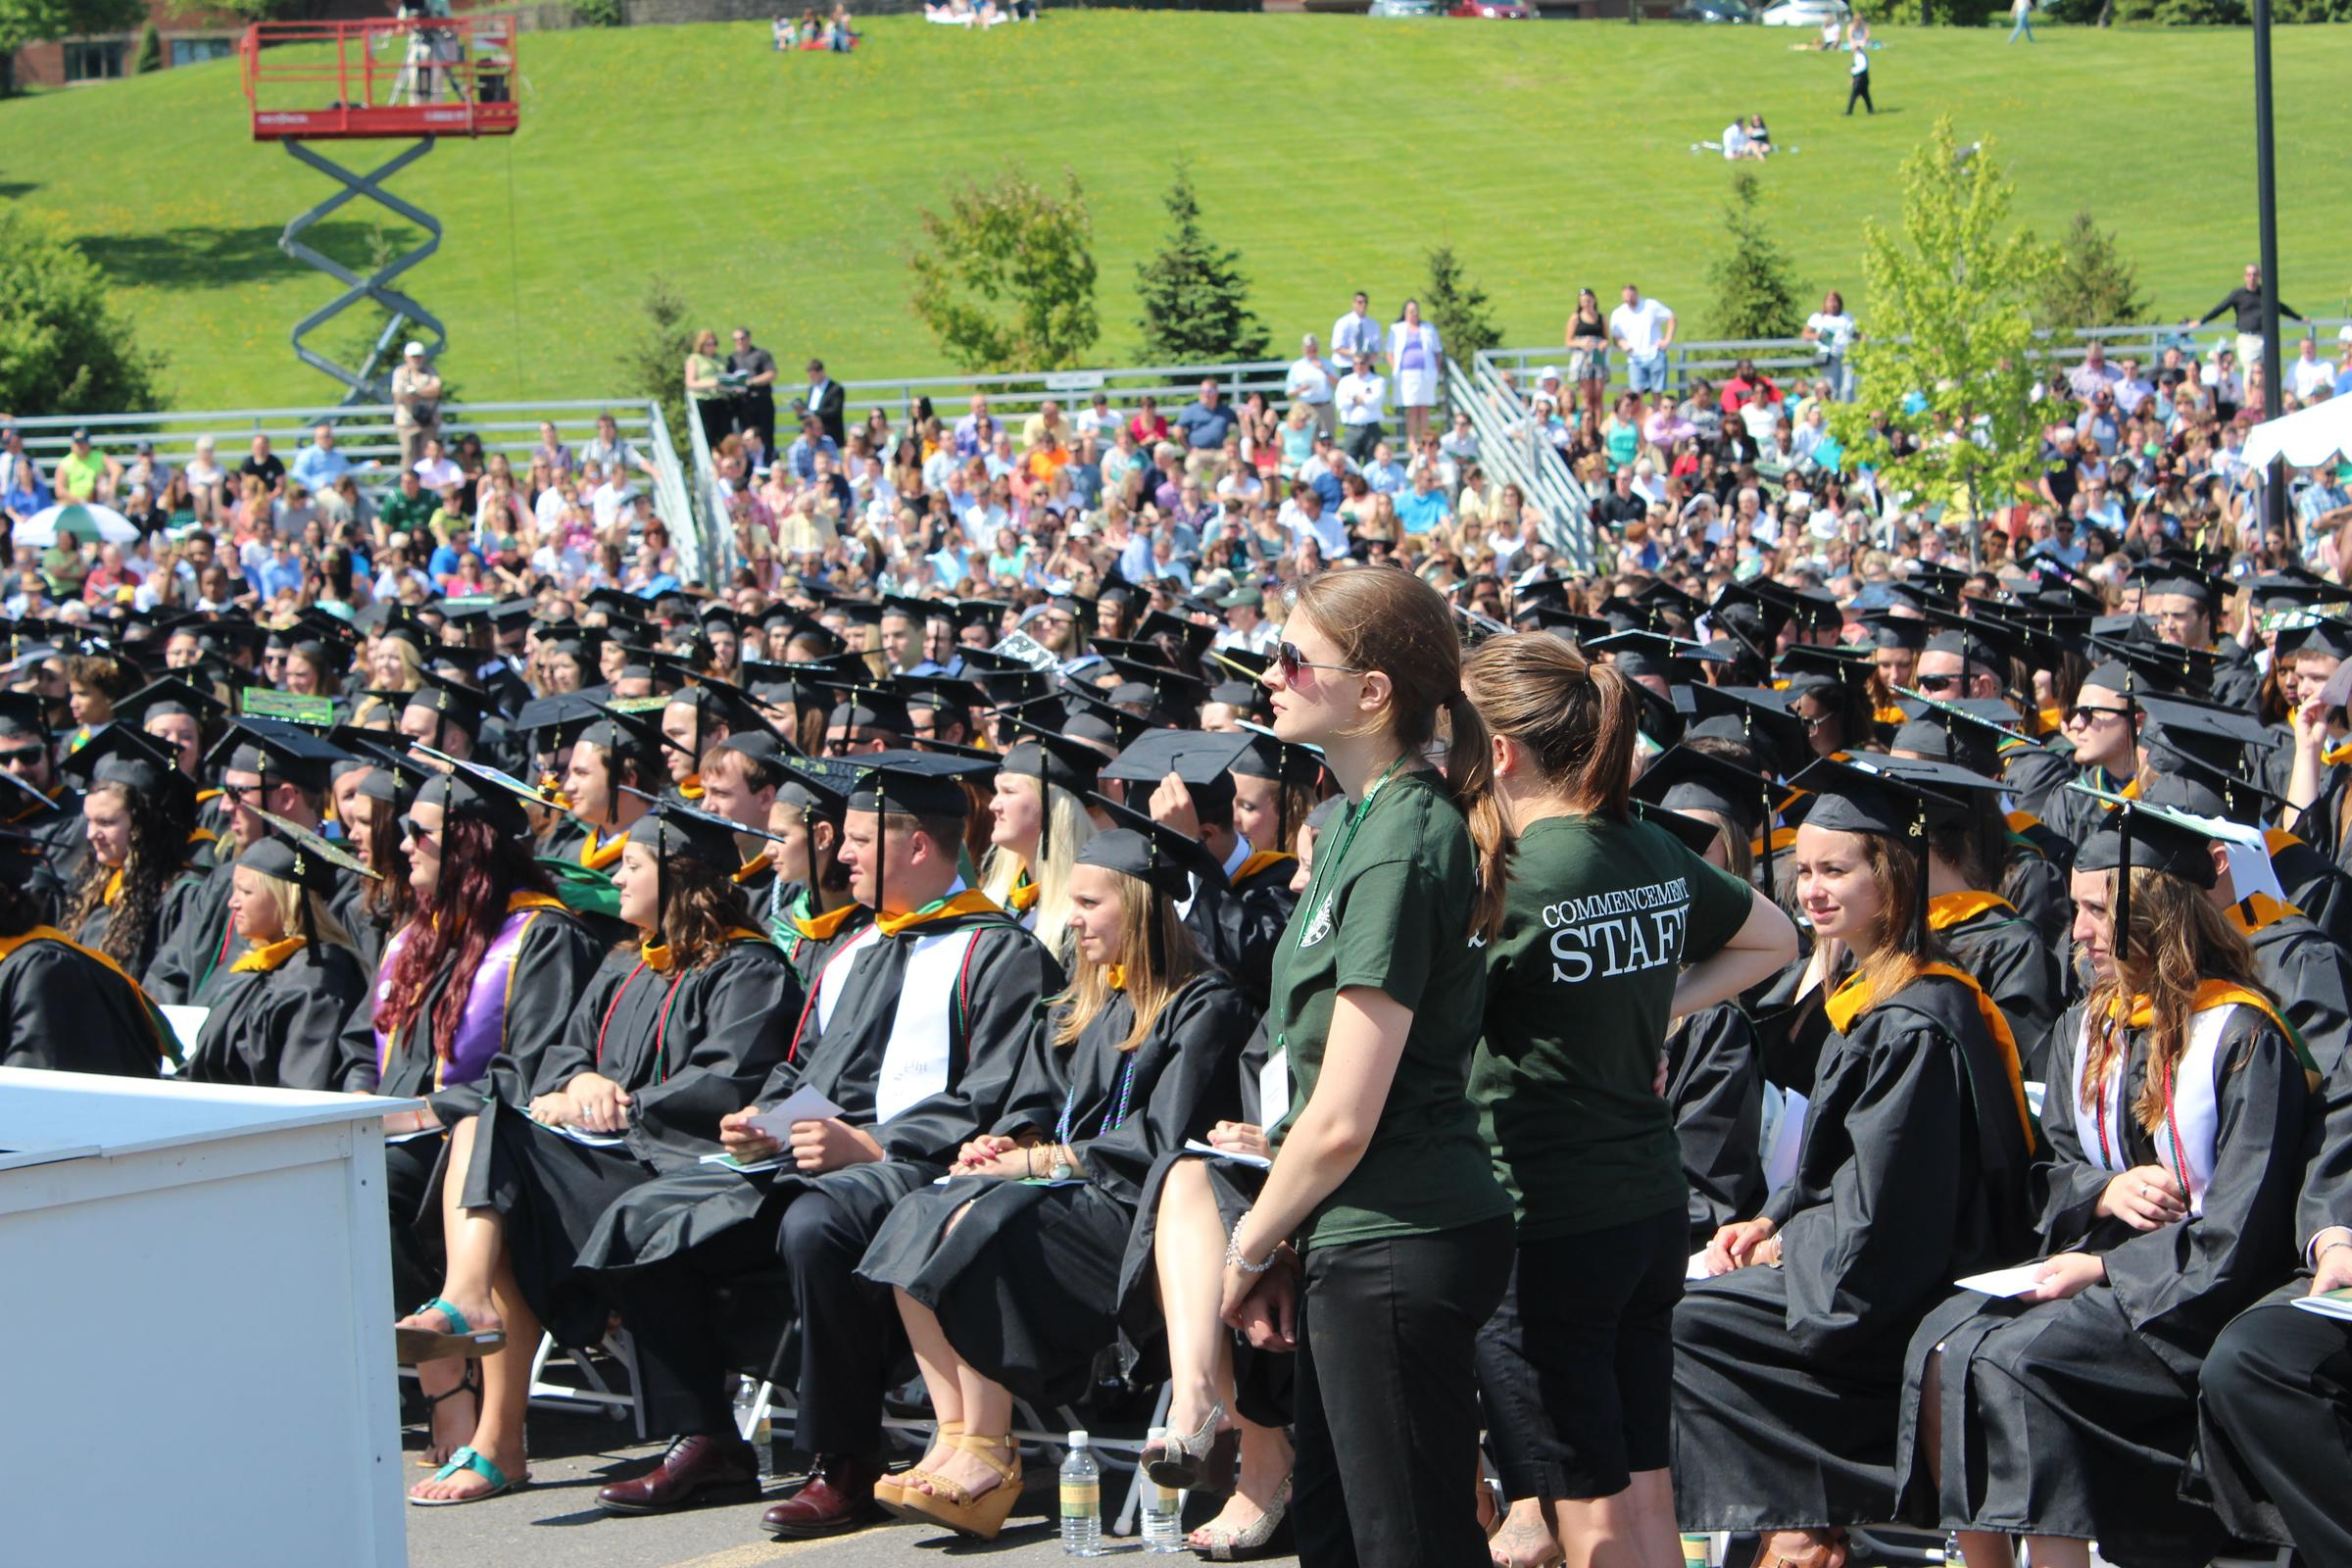 Le Moyne commencement goes smoothly despite controversy over speaker ...